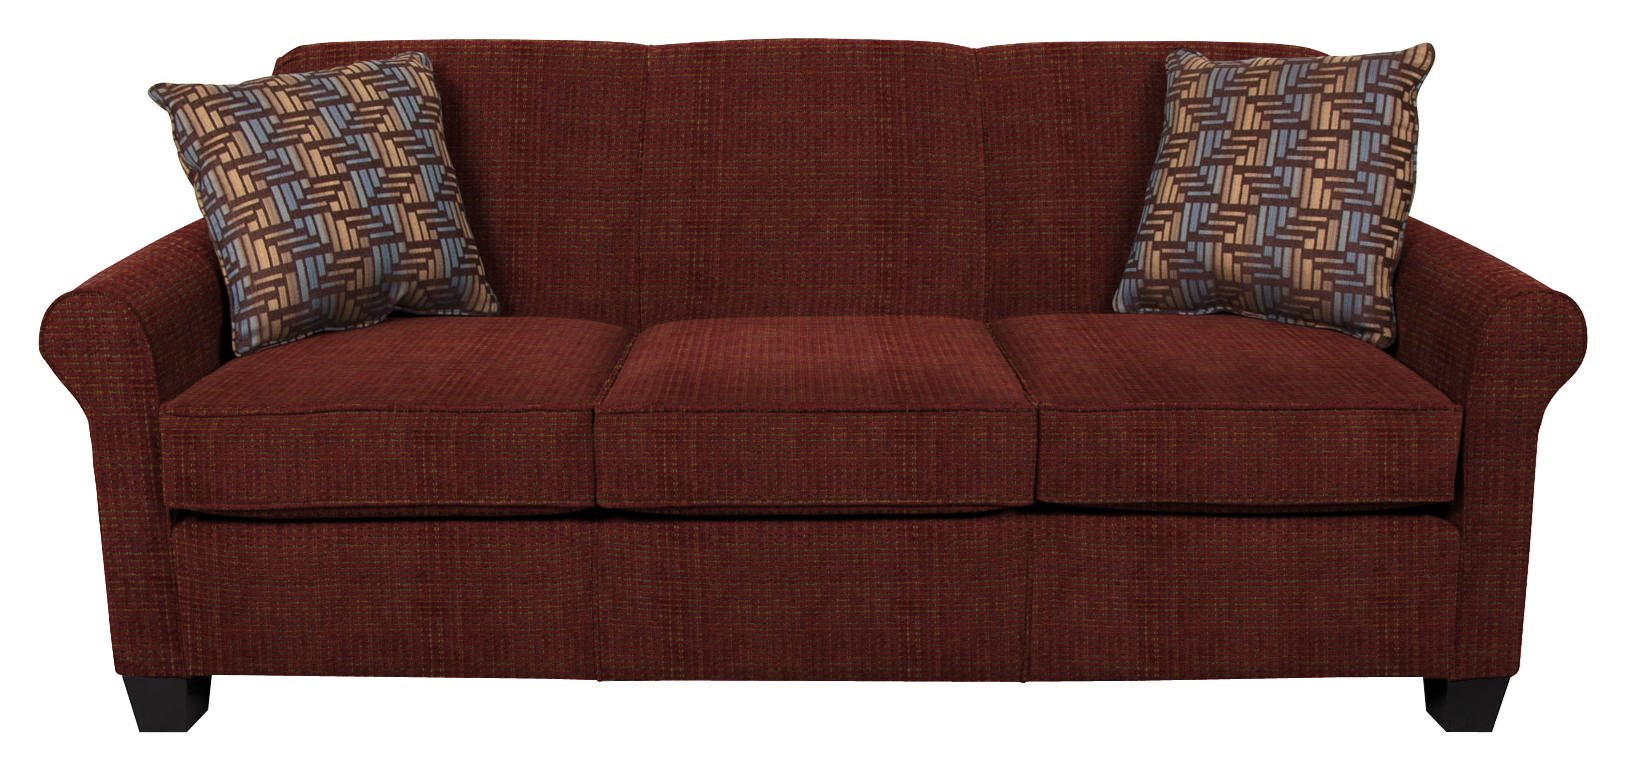 england sofa sleeper reviews tufted leather pull out awesome home